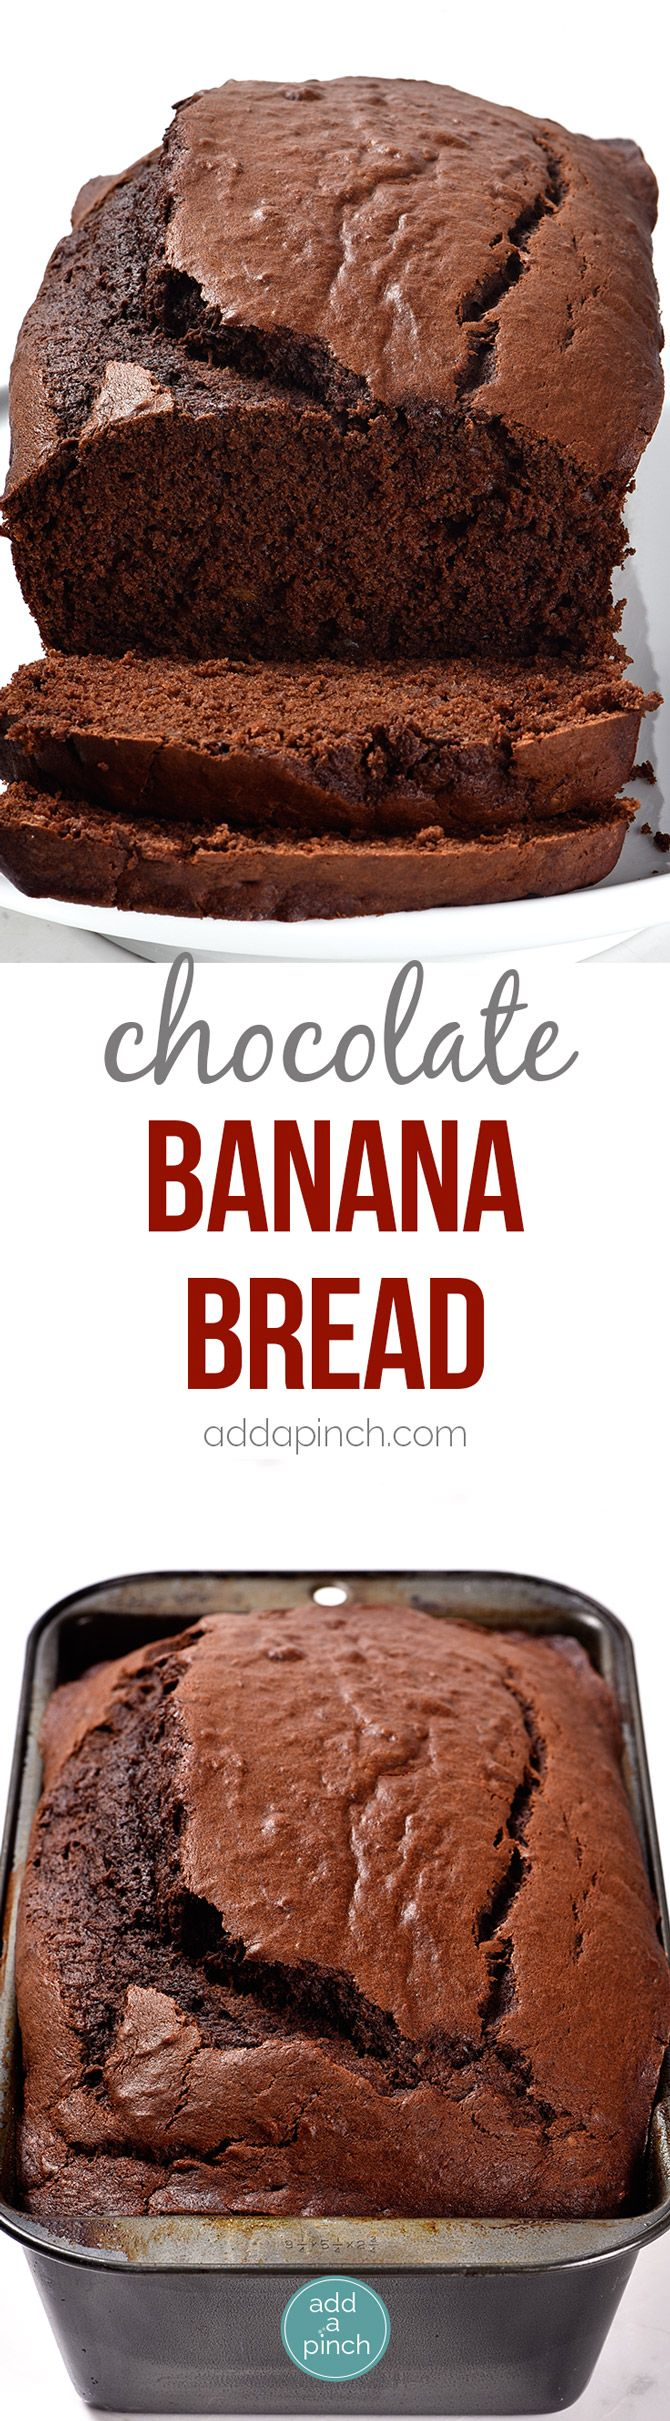 Chocolate Banana Bread Recipe - Take your banana bread to a whole new ...